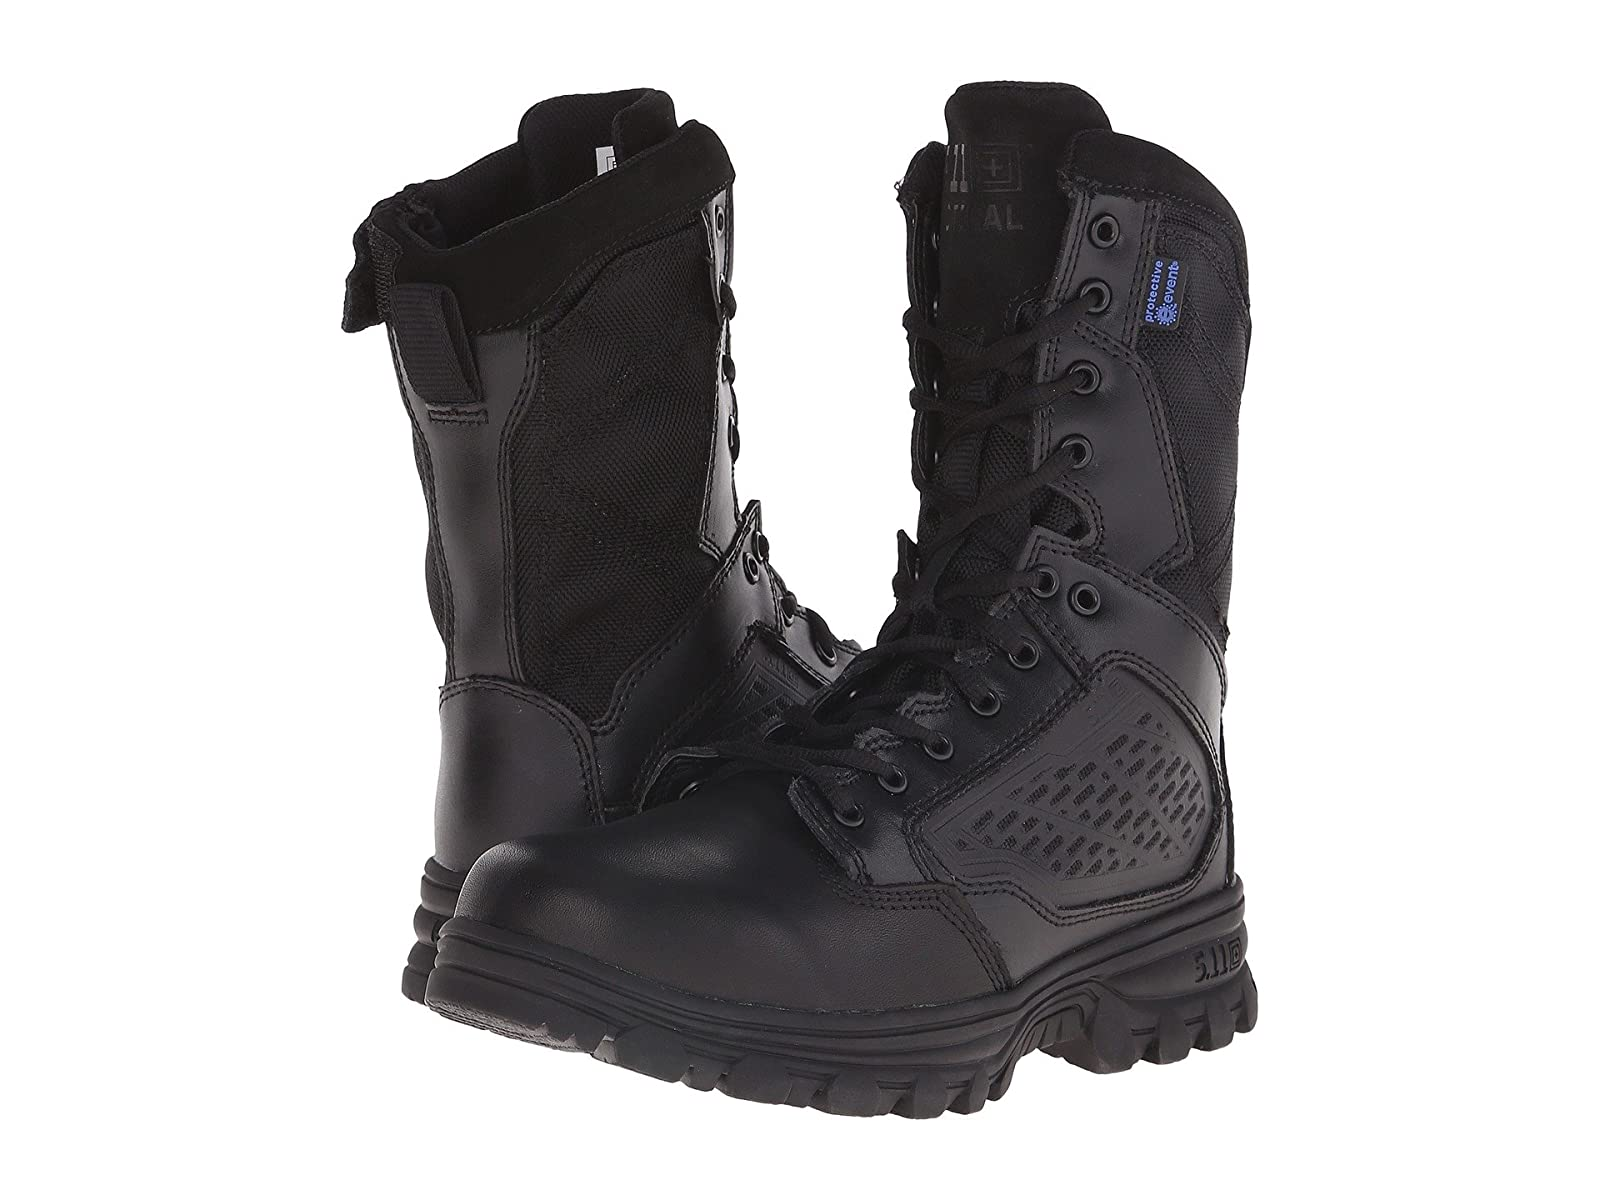 """5.11 Tactical Evo 8"""" Waterproof w/ Side ZipSelling fashionable and eye-catching shoes"""